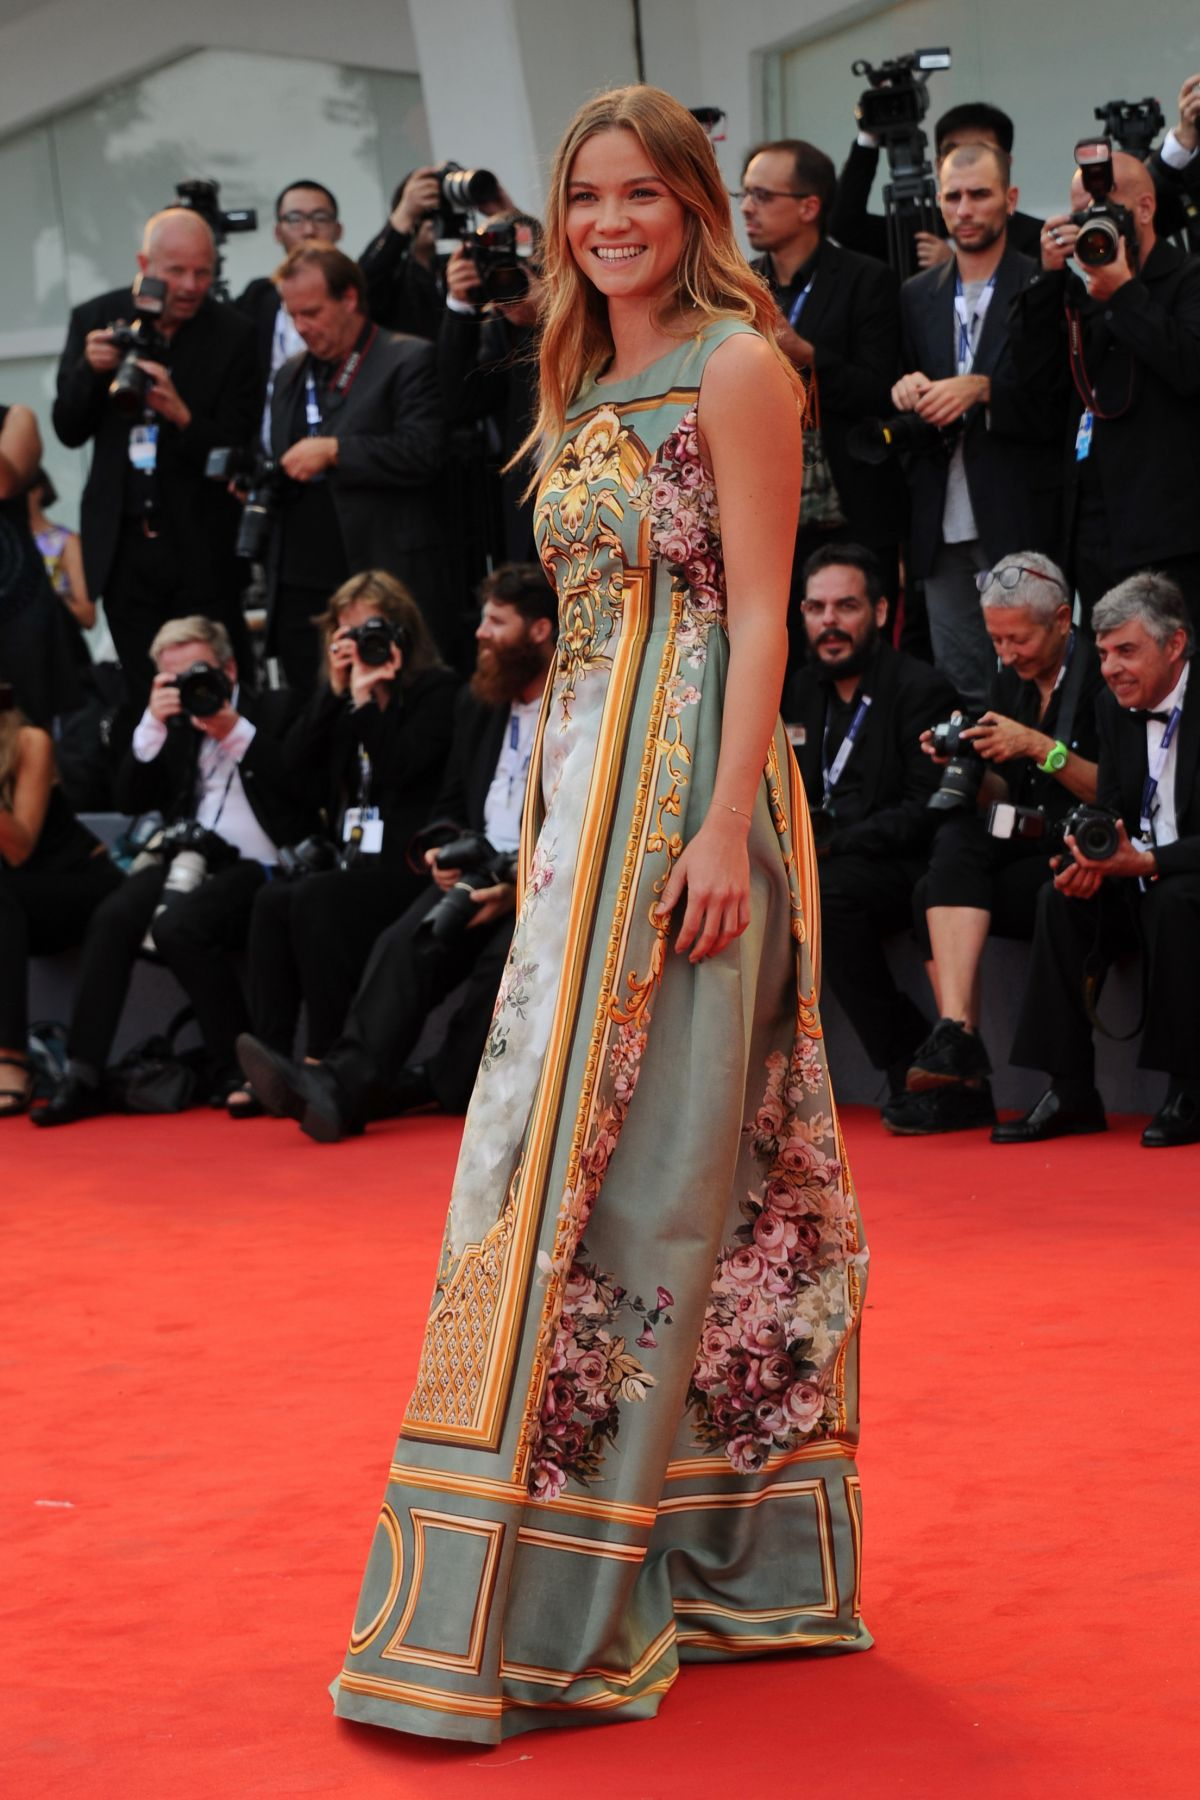 fiammetta-cicogna-at-everest-premiere-and-72nd-venice-film-festival-opening-ceremony_19